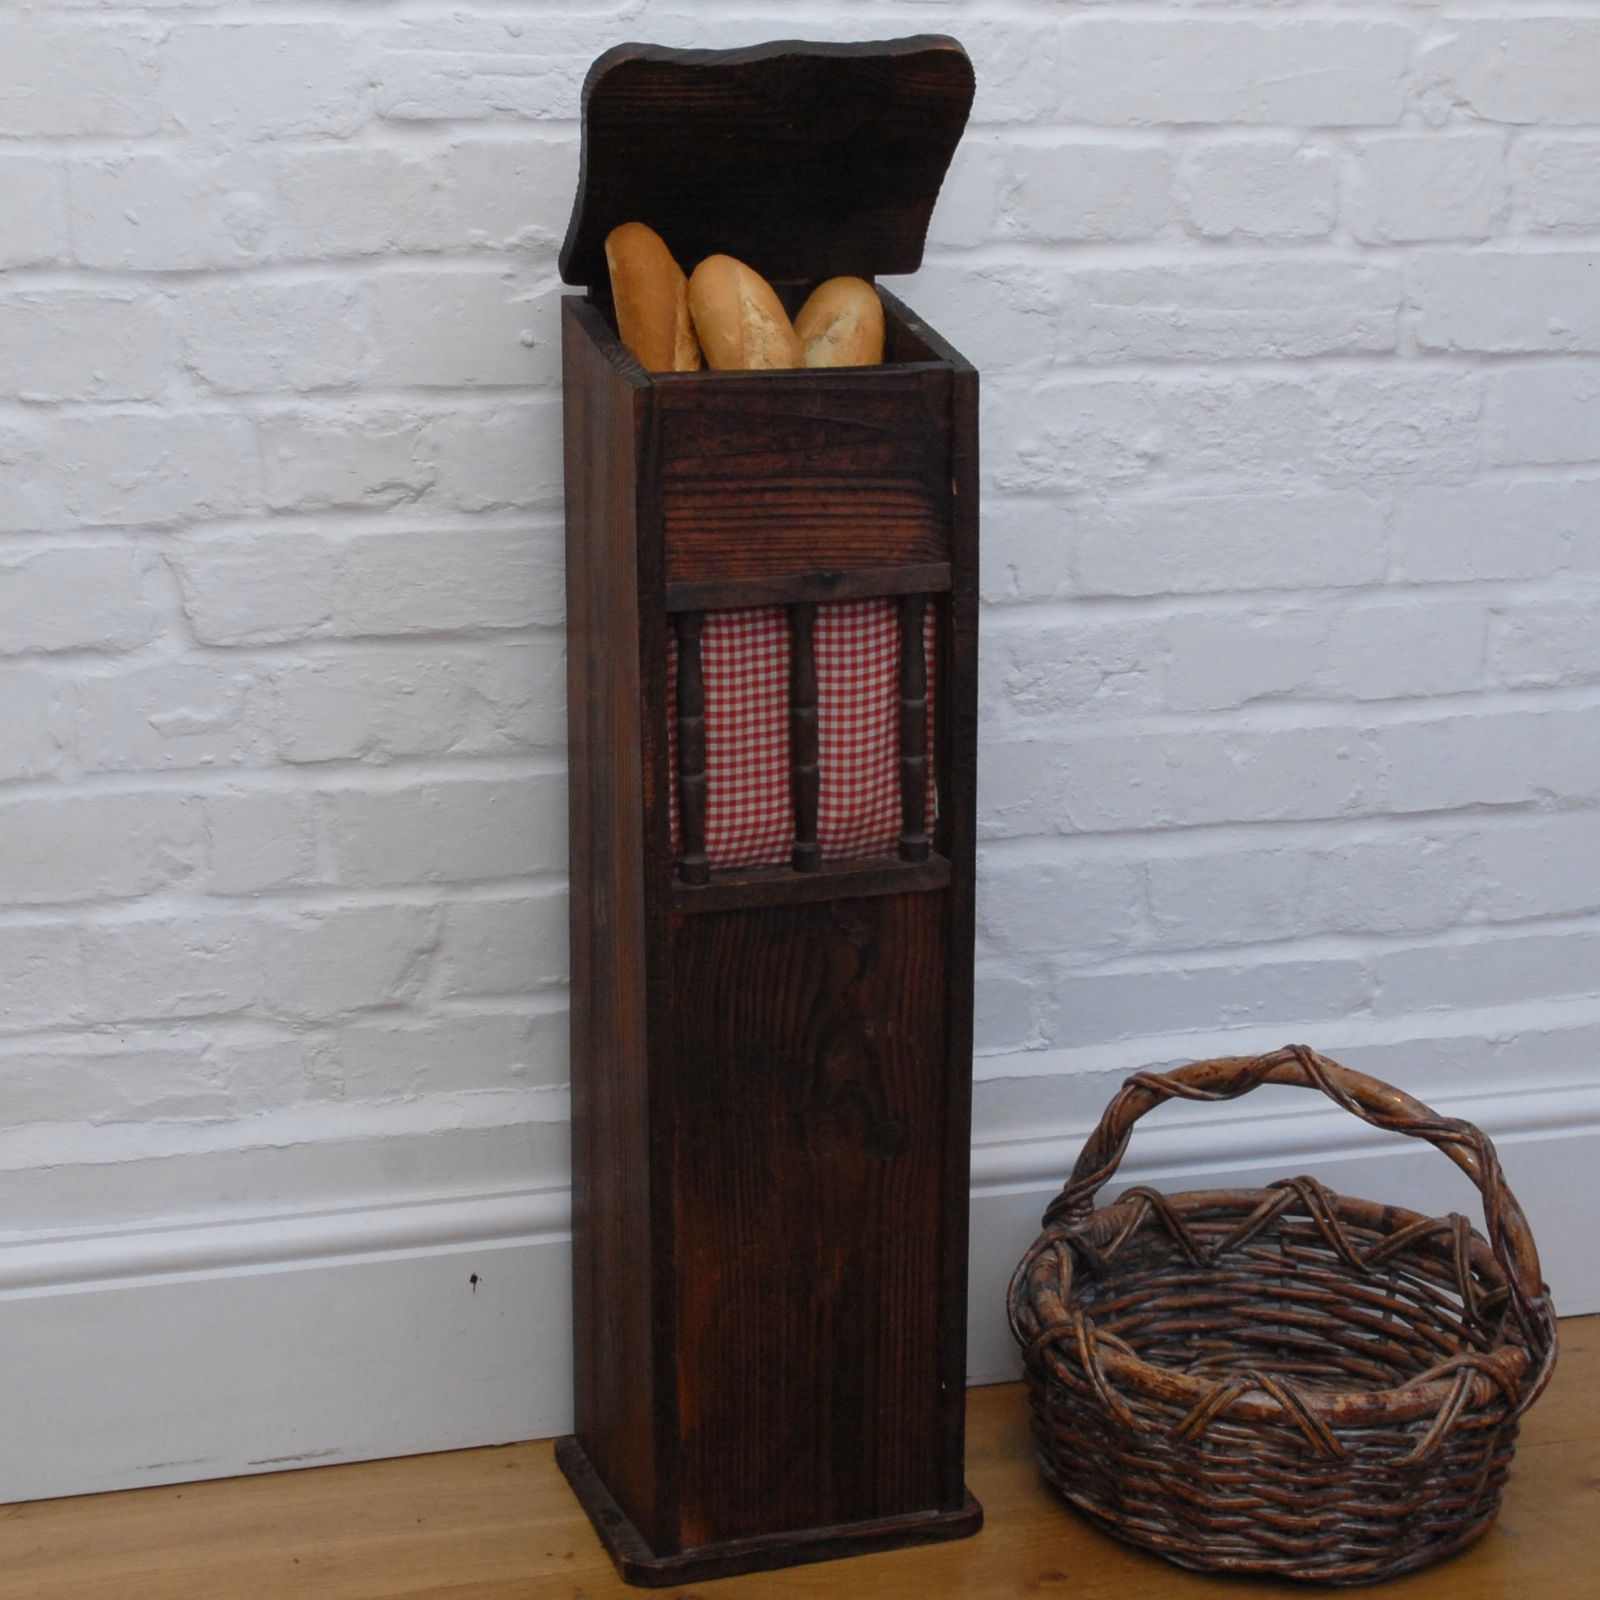 French Baguette Box Vintage Wooden Bread Bin